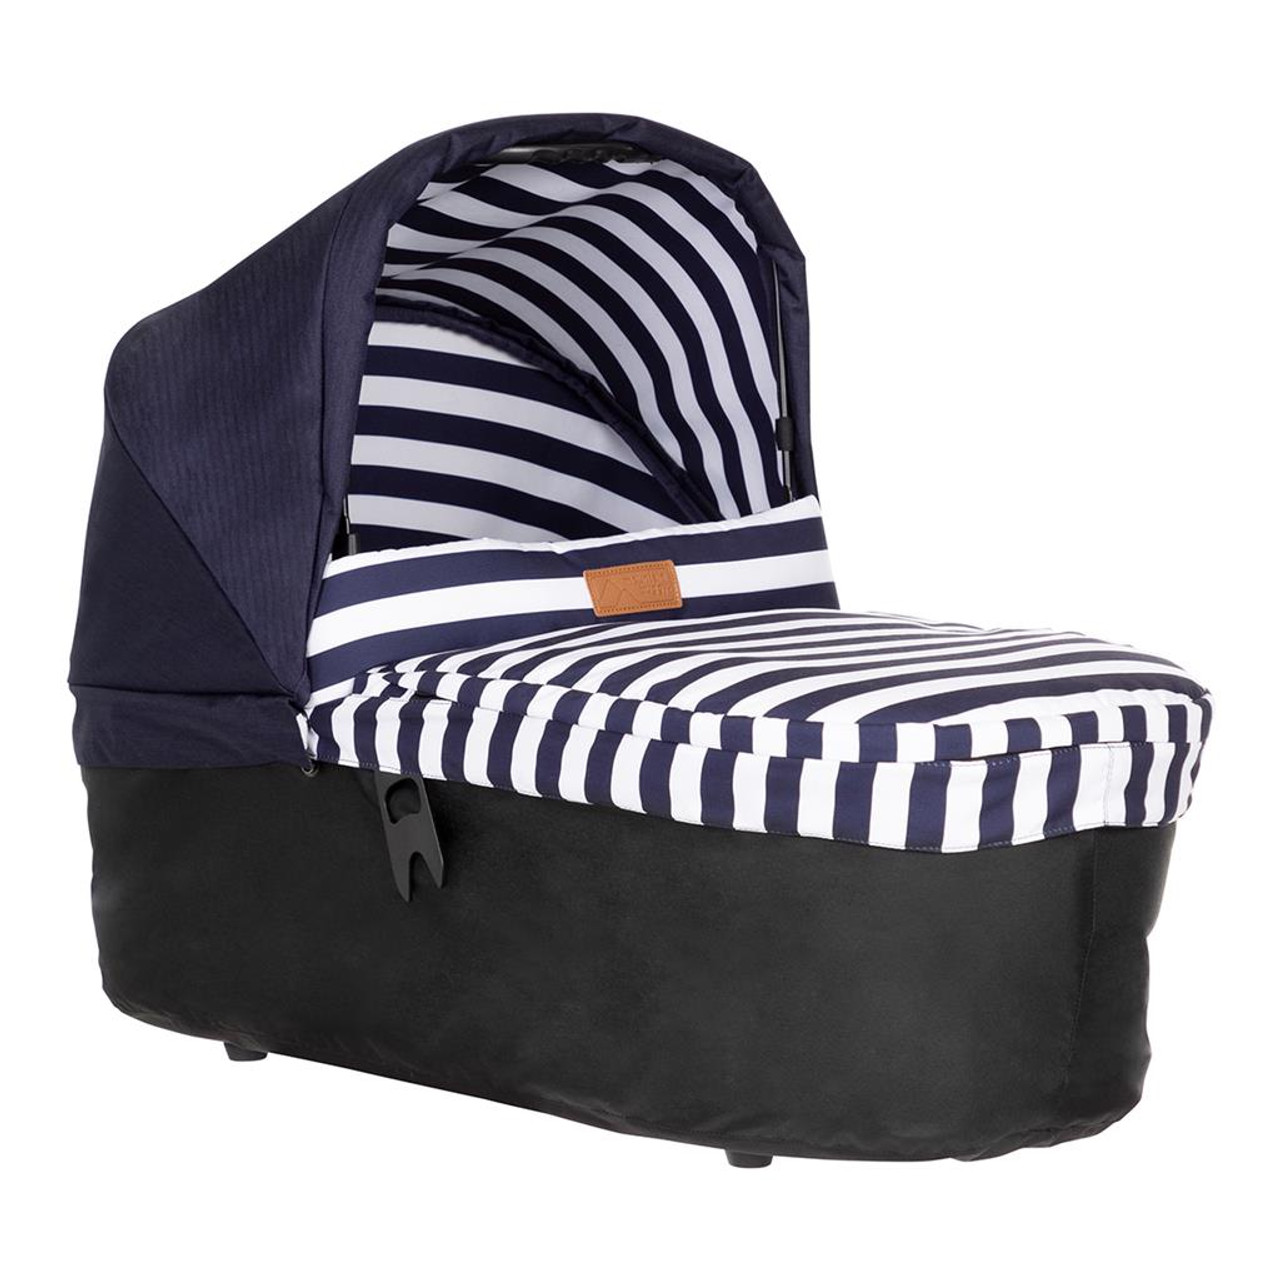 Mountain Buggy Carrycot PLUS for Urban Jungle, Terrain and +one | Baby Barn Discounts Mountain Buggy carrycot plus compatible for the Urban Jungle, terrain & +one